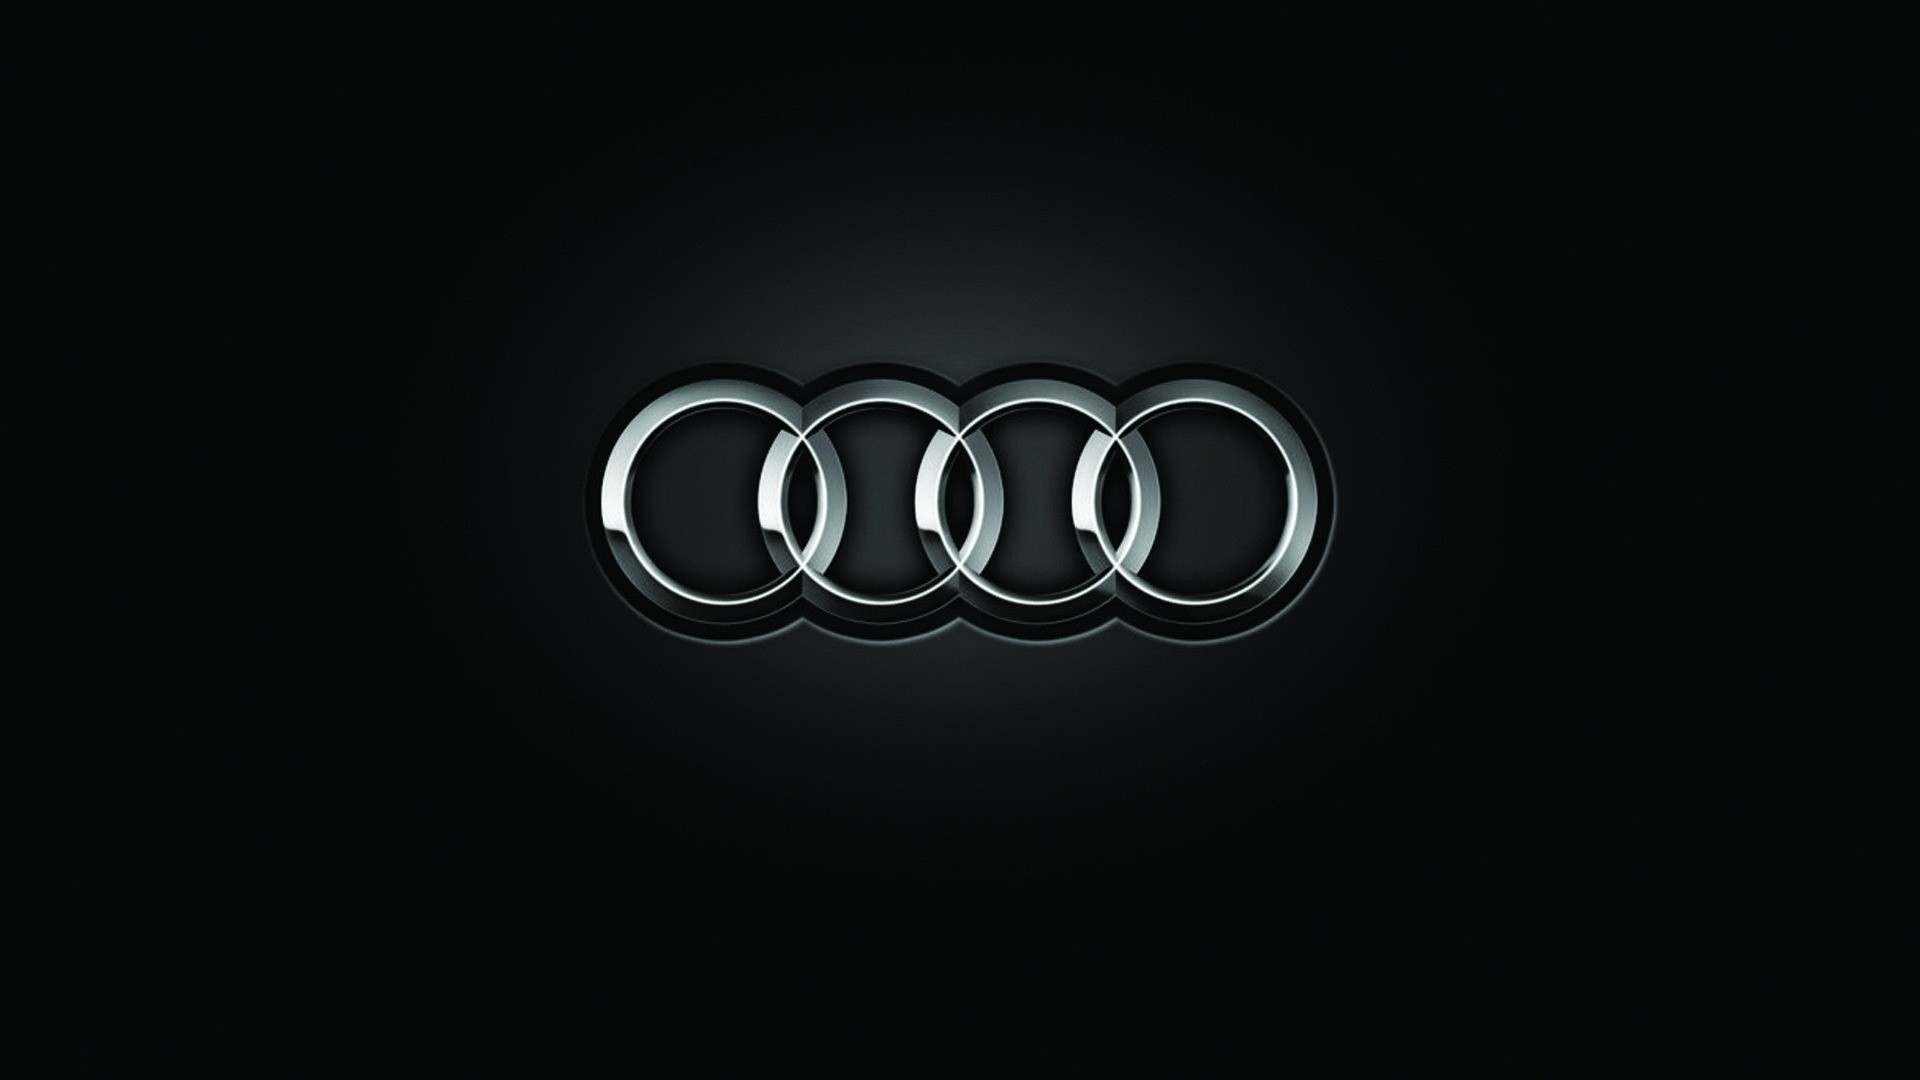 1920x1080 Audi Laptop Full Hd 1080p Hd 4k Wallpapers Images